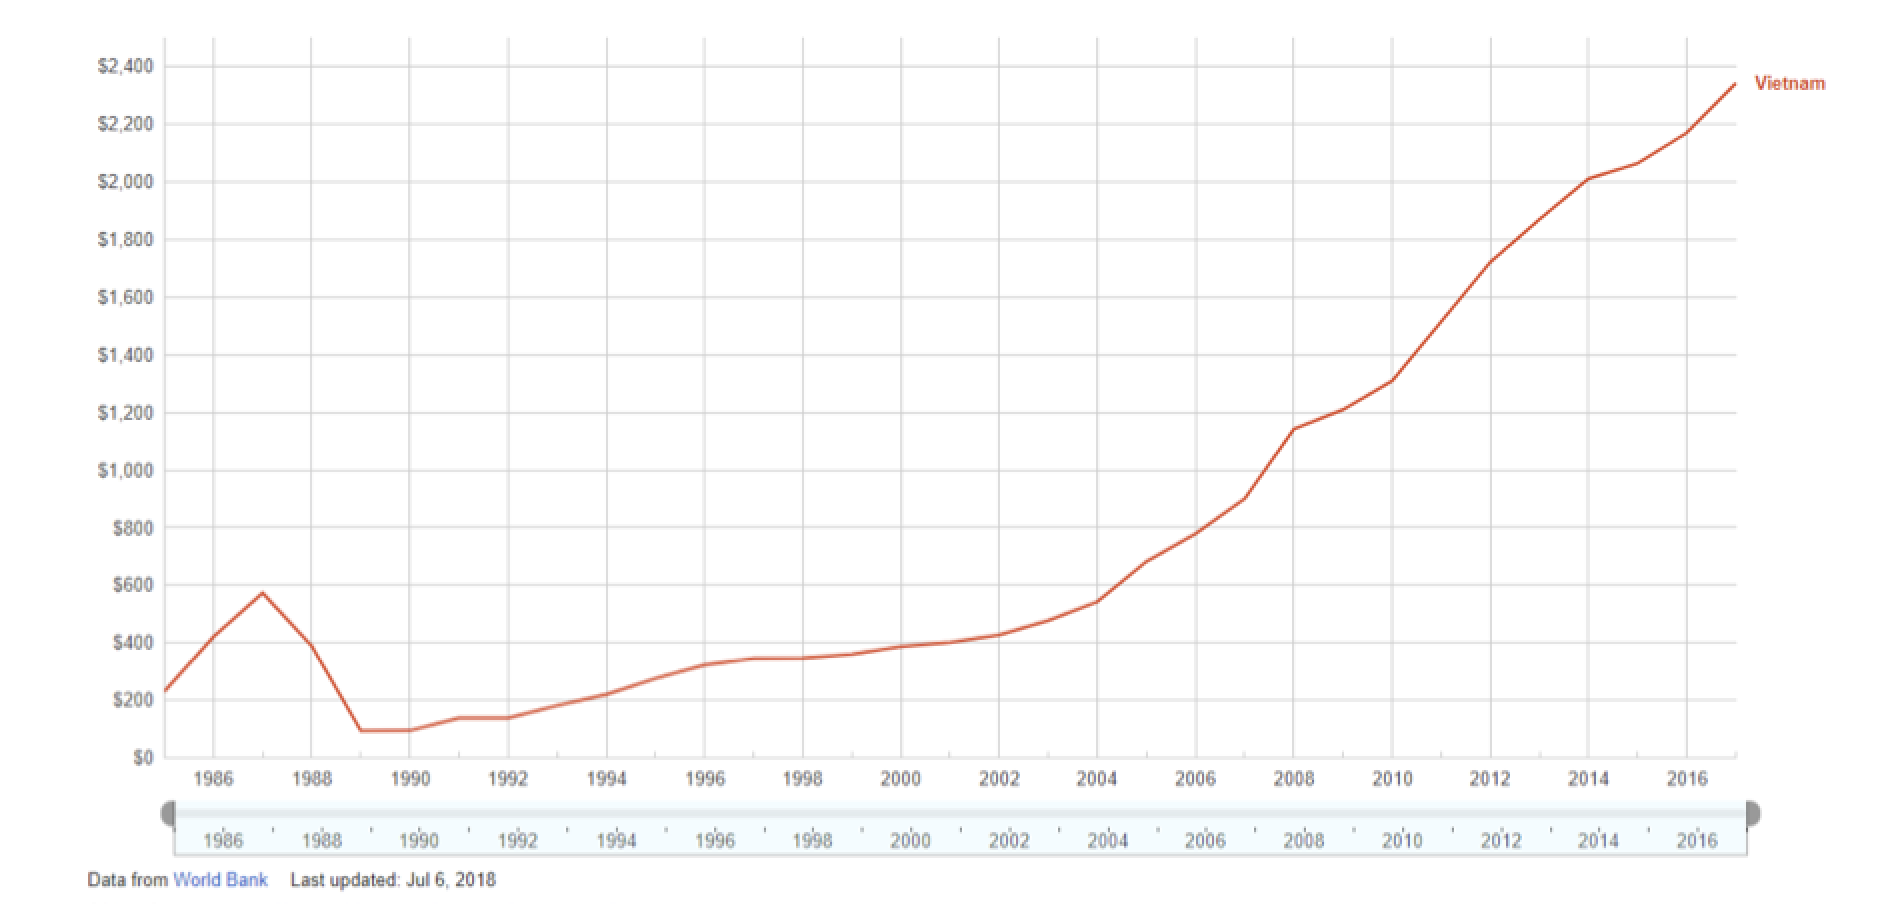 Viet Nam's per capita GDP has increased tenfold over the past 30 years